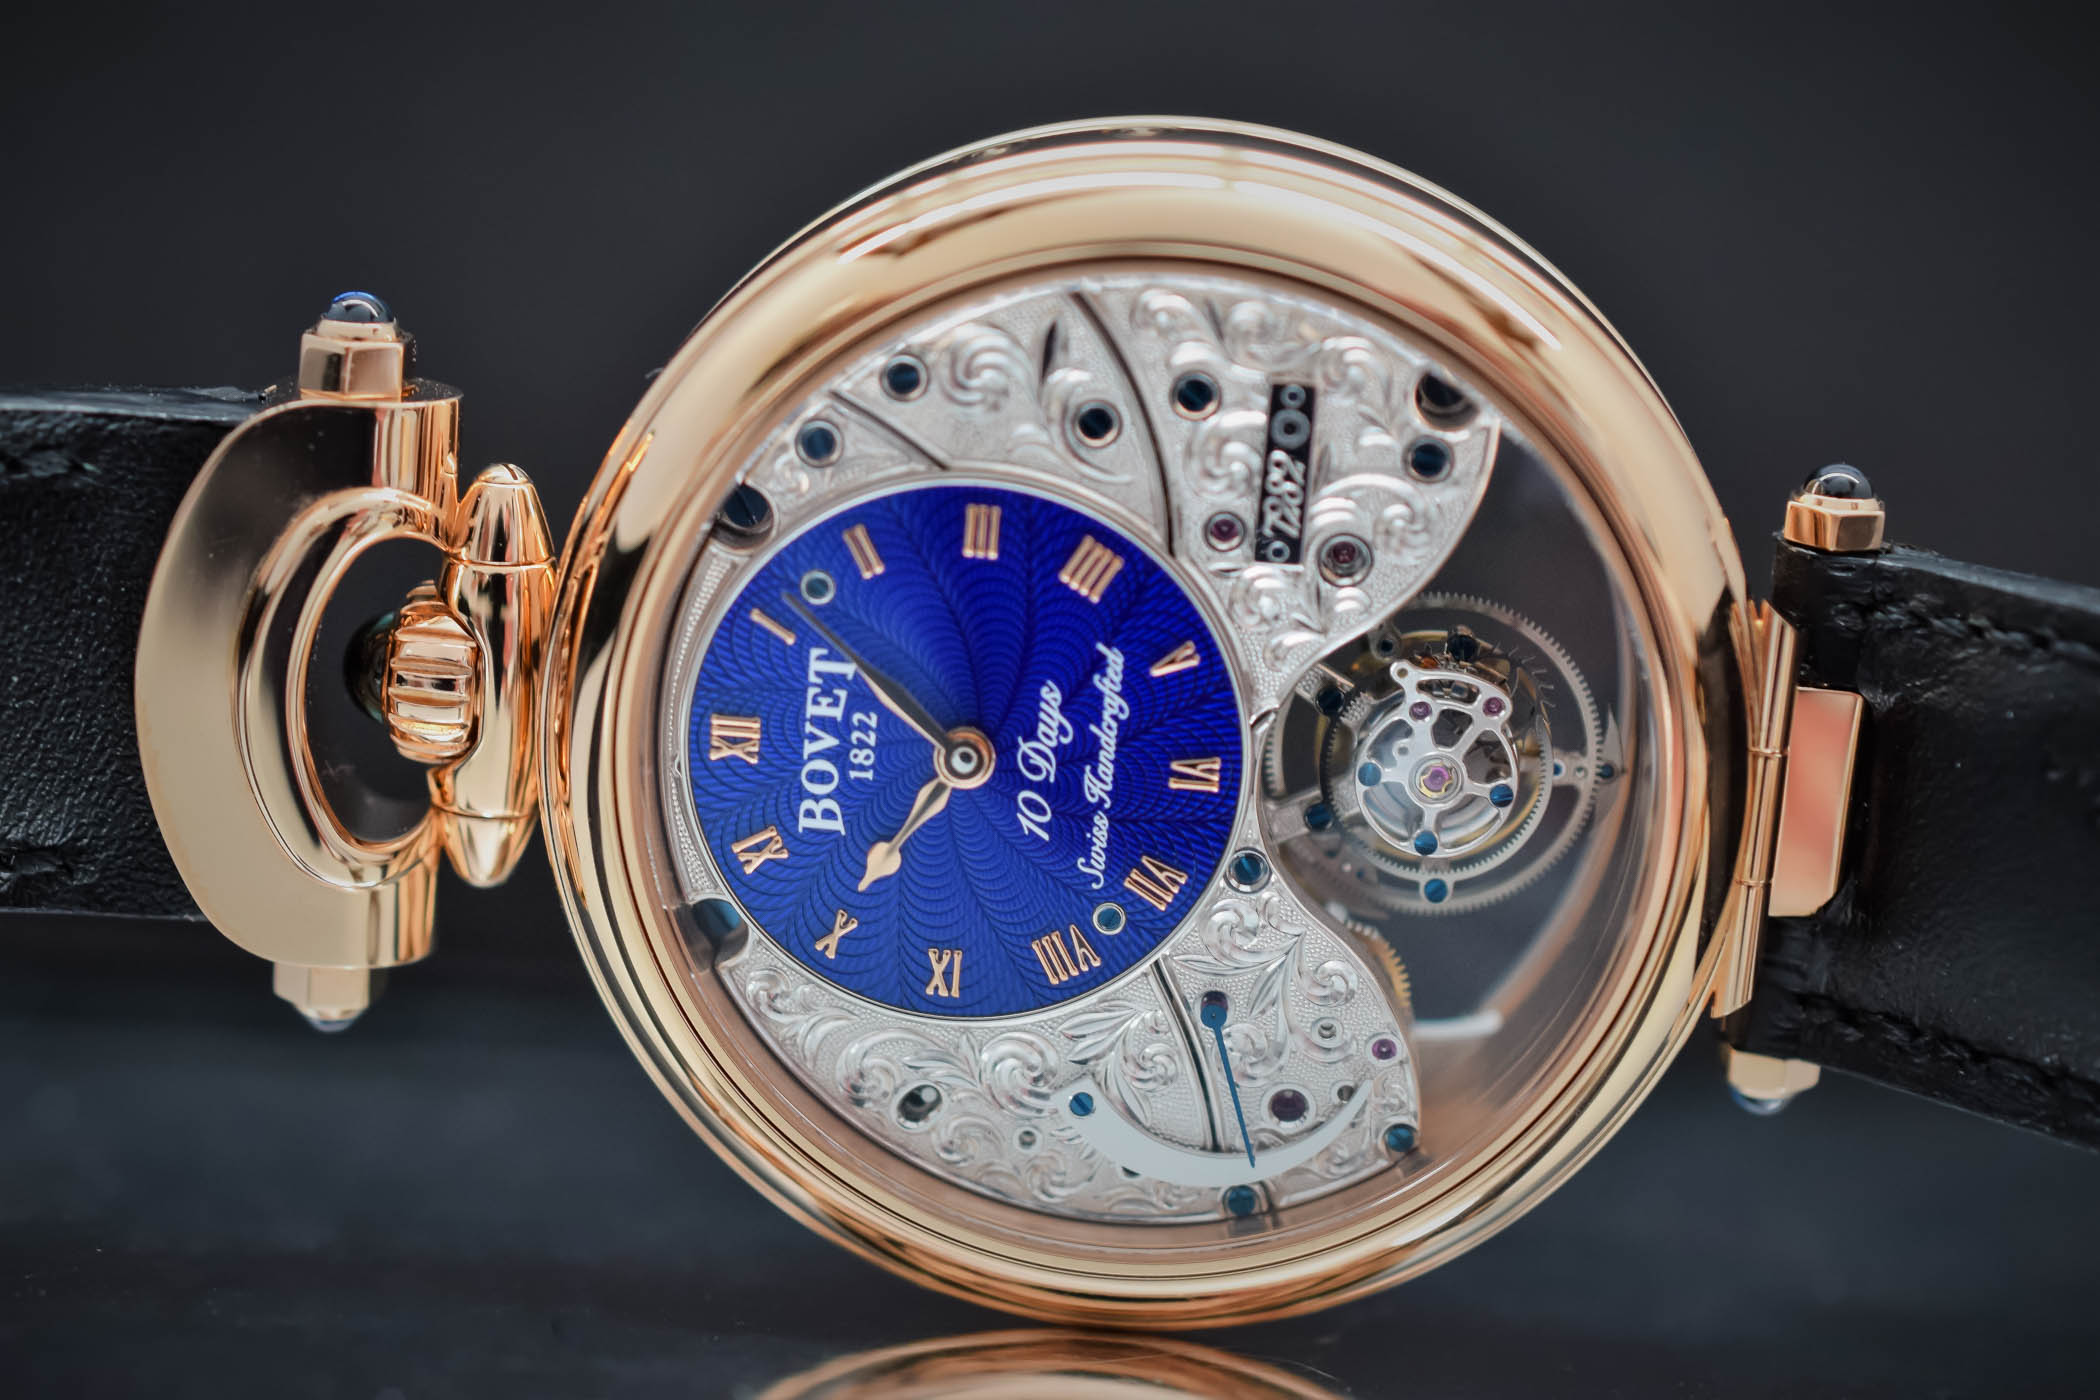 amadeo bovet fleurier tourbillon watches sihh edouard flying